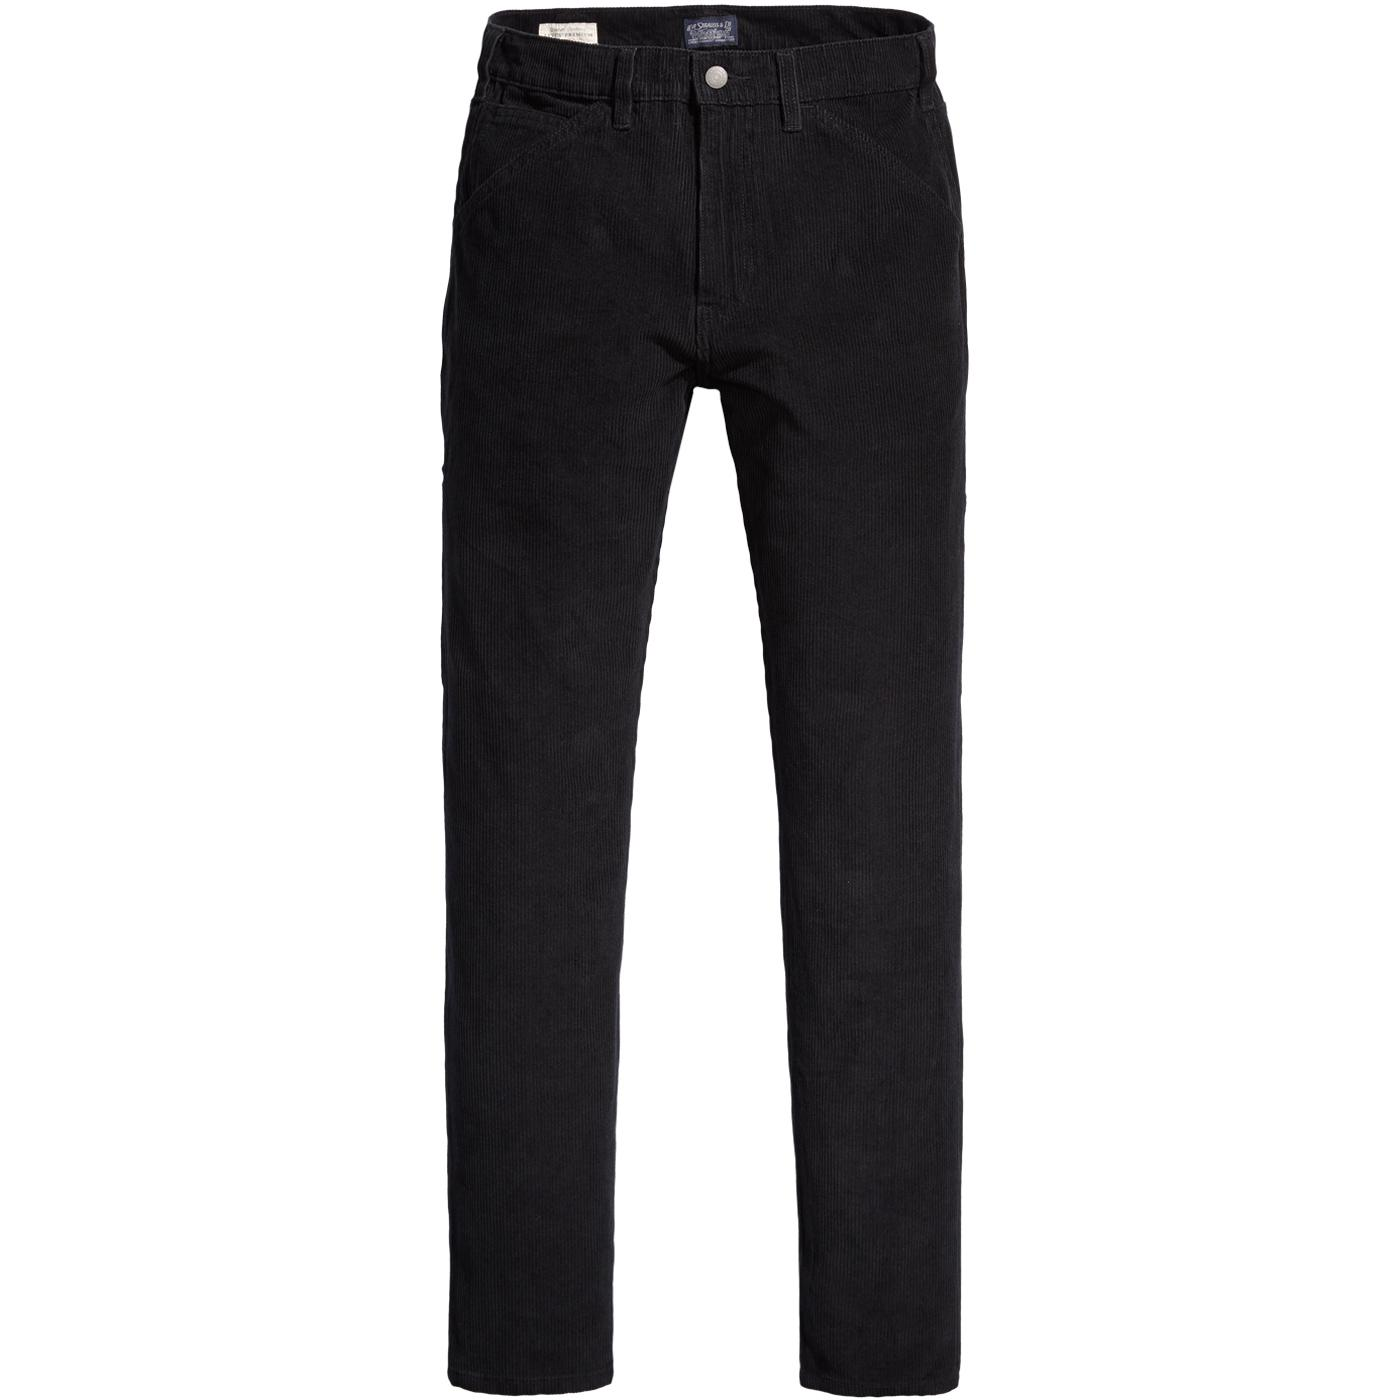 LEVI'S 502 Carpenter Slim Taper Cord Pants (Black)